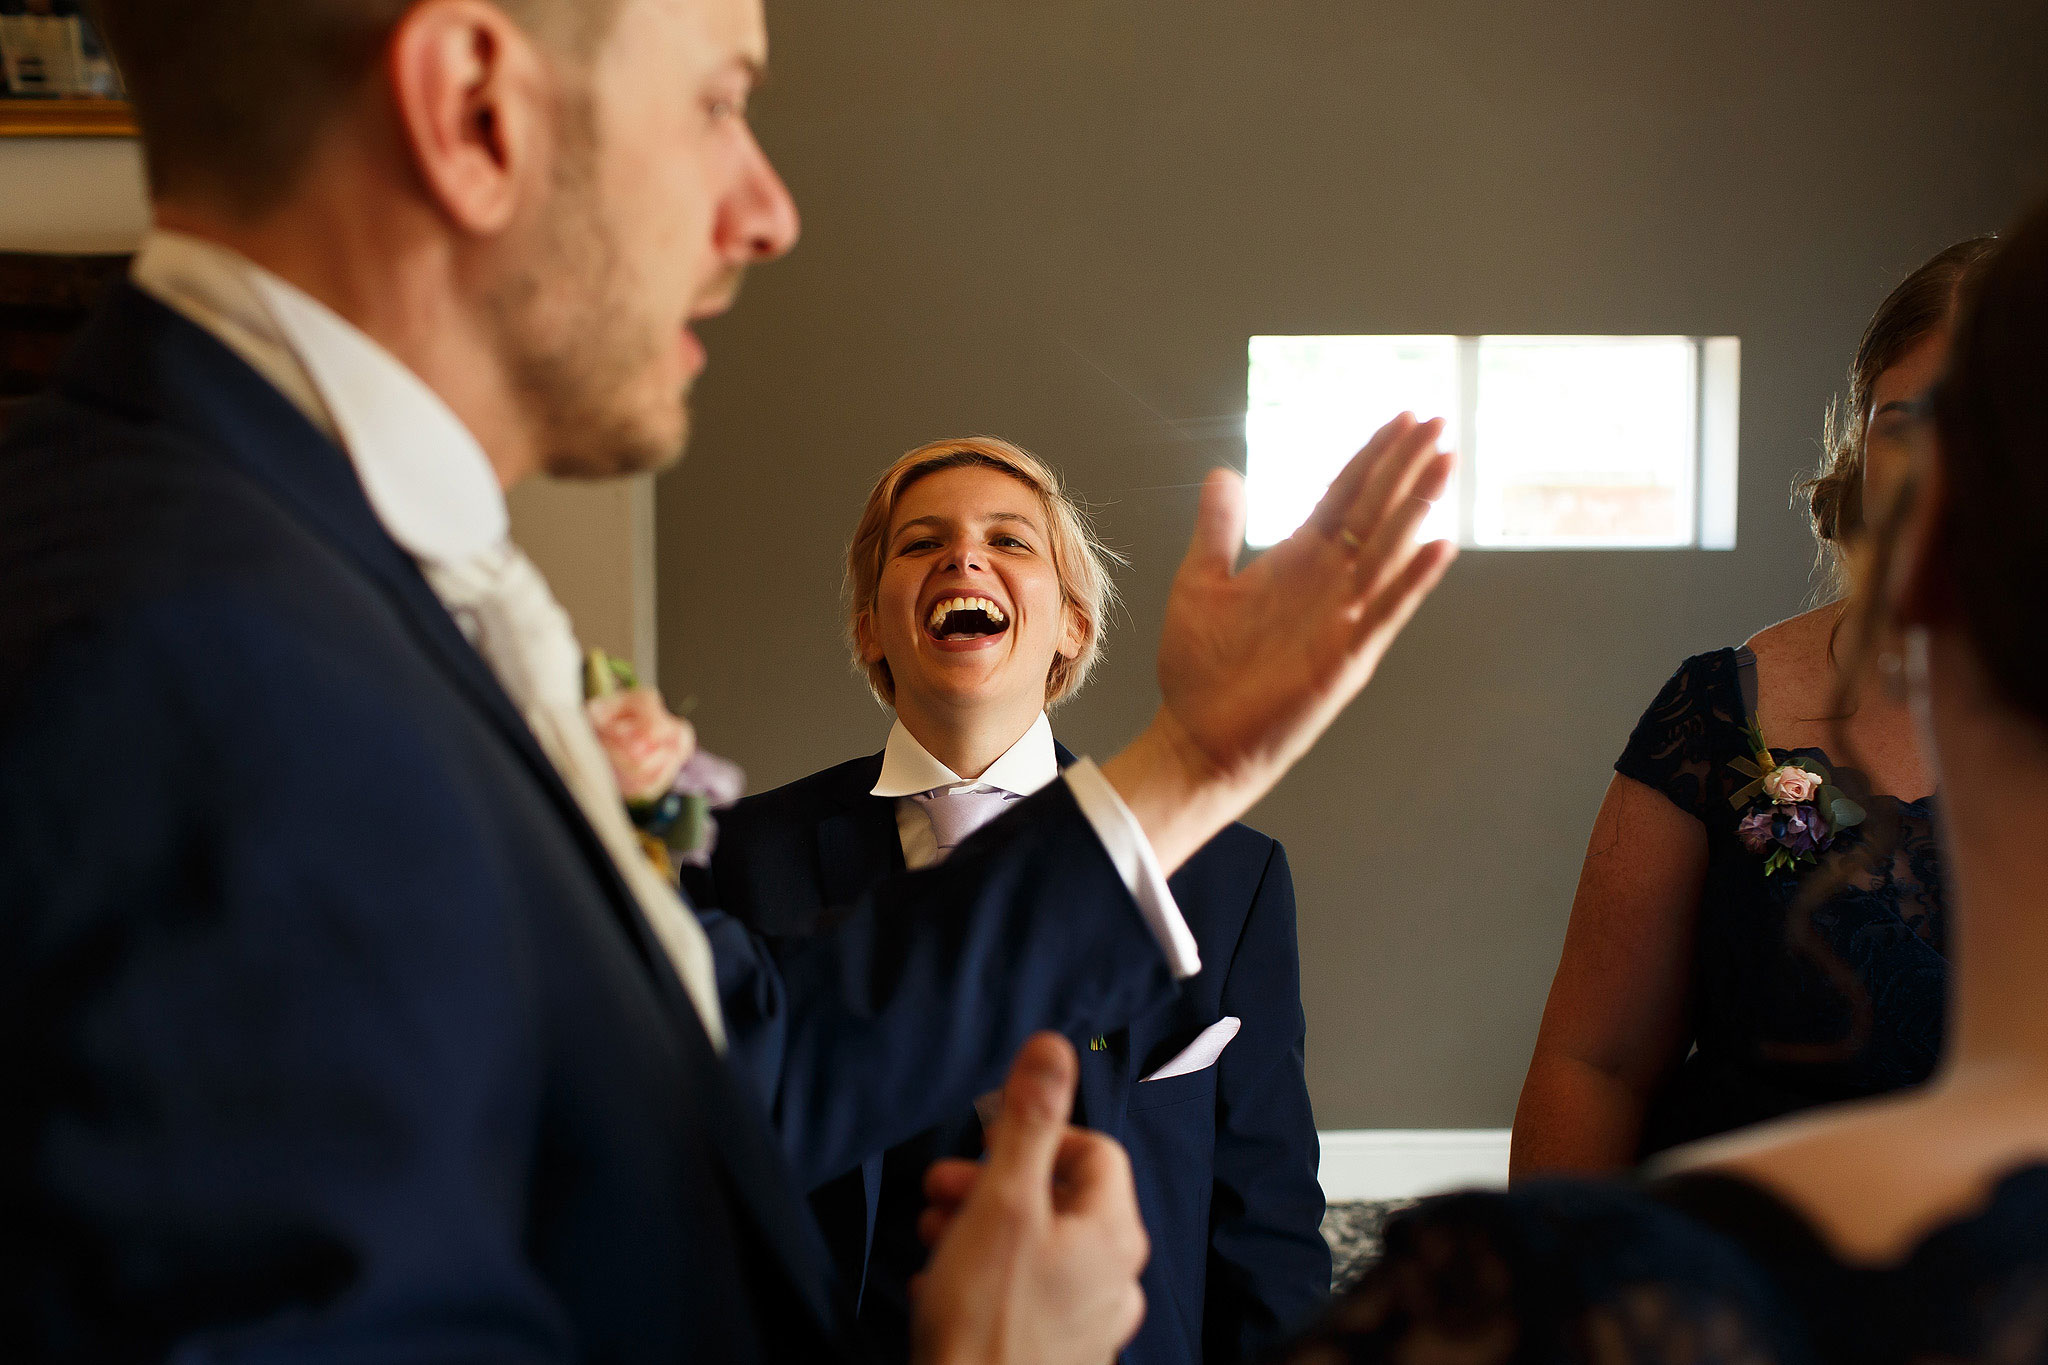 Grooms best woman laughing in navy suit - The Villa at Wrea Green Wedding Photography - Toni Darcy Photography